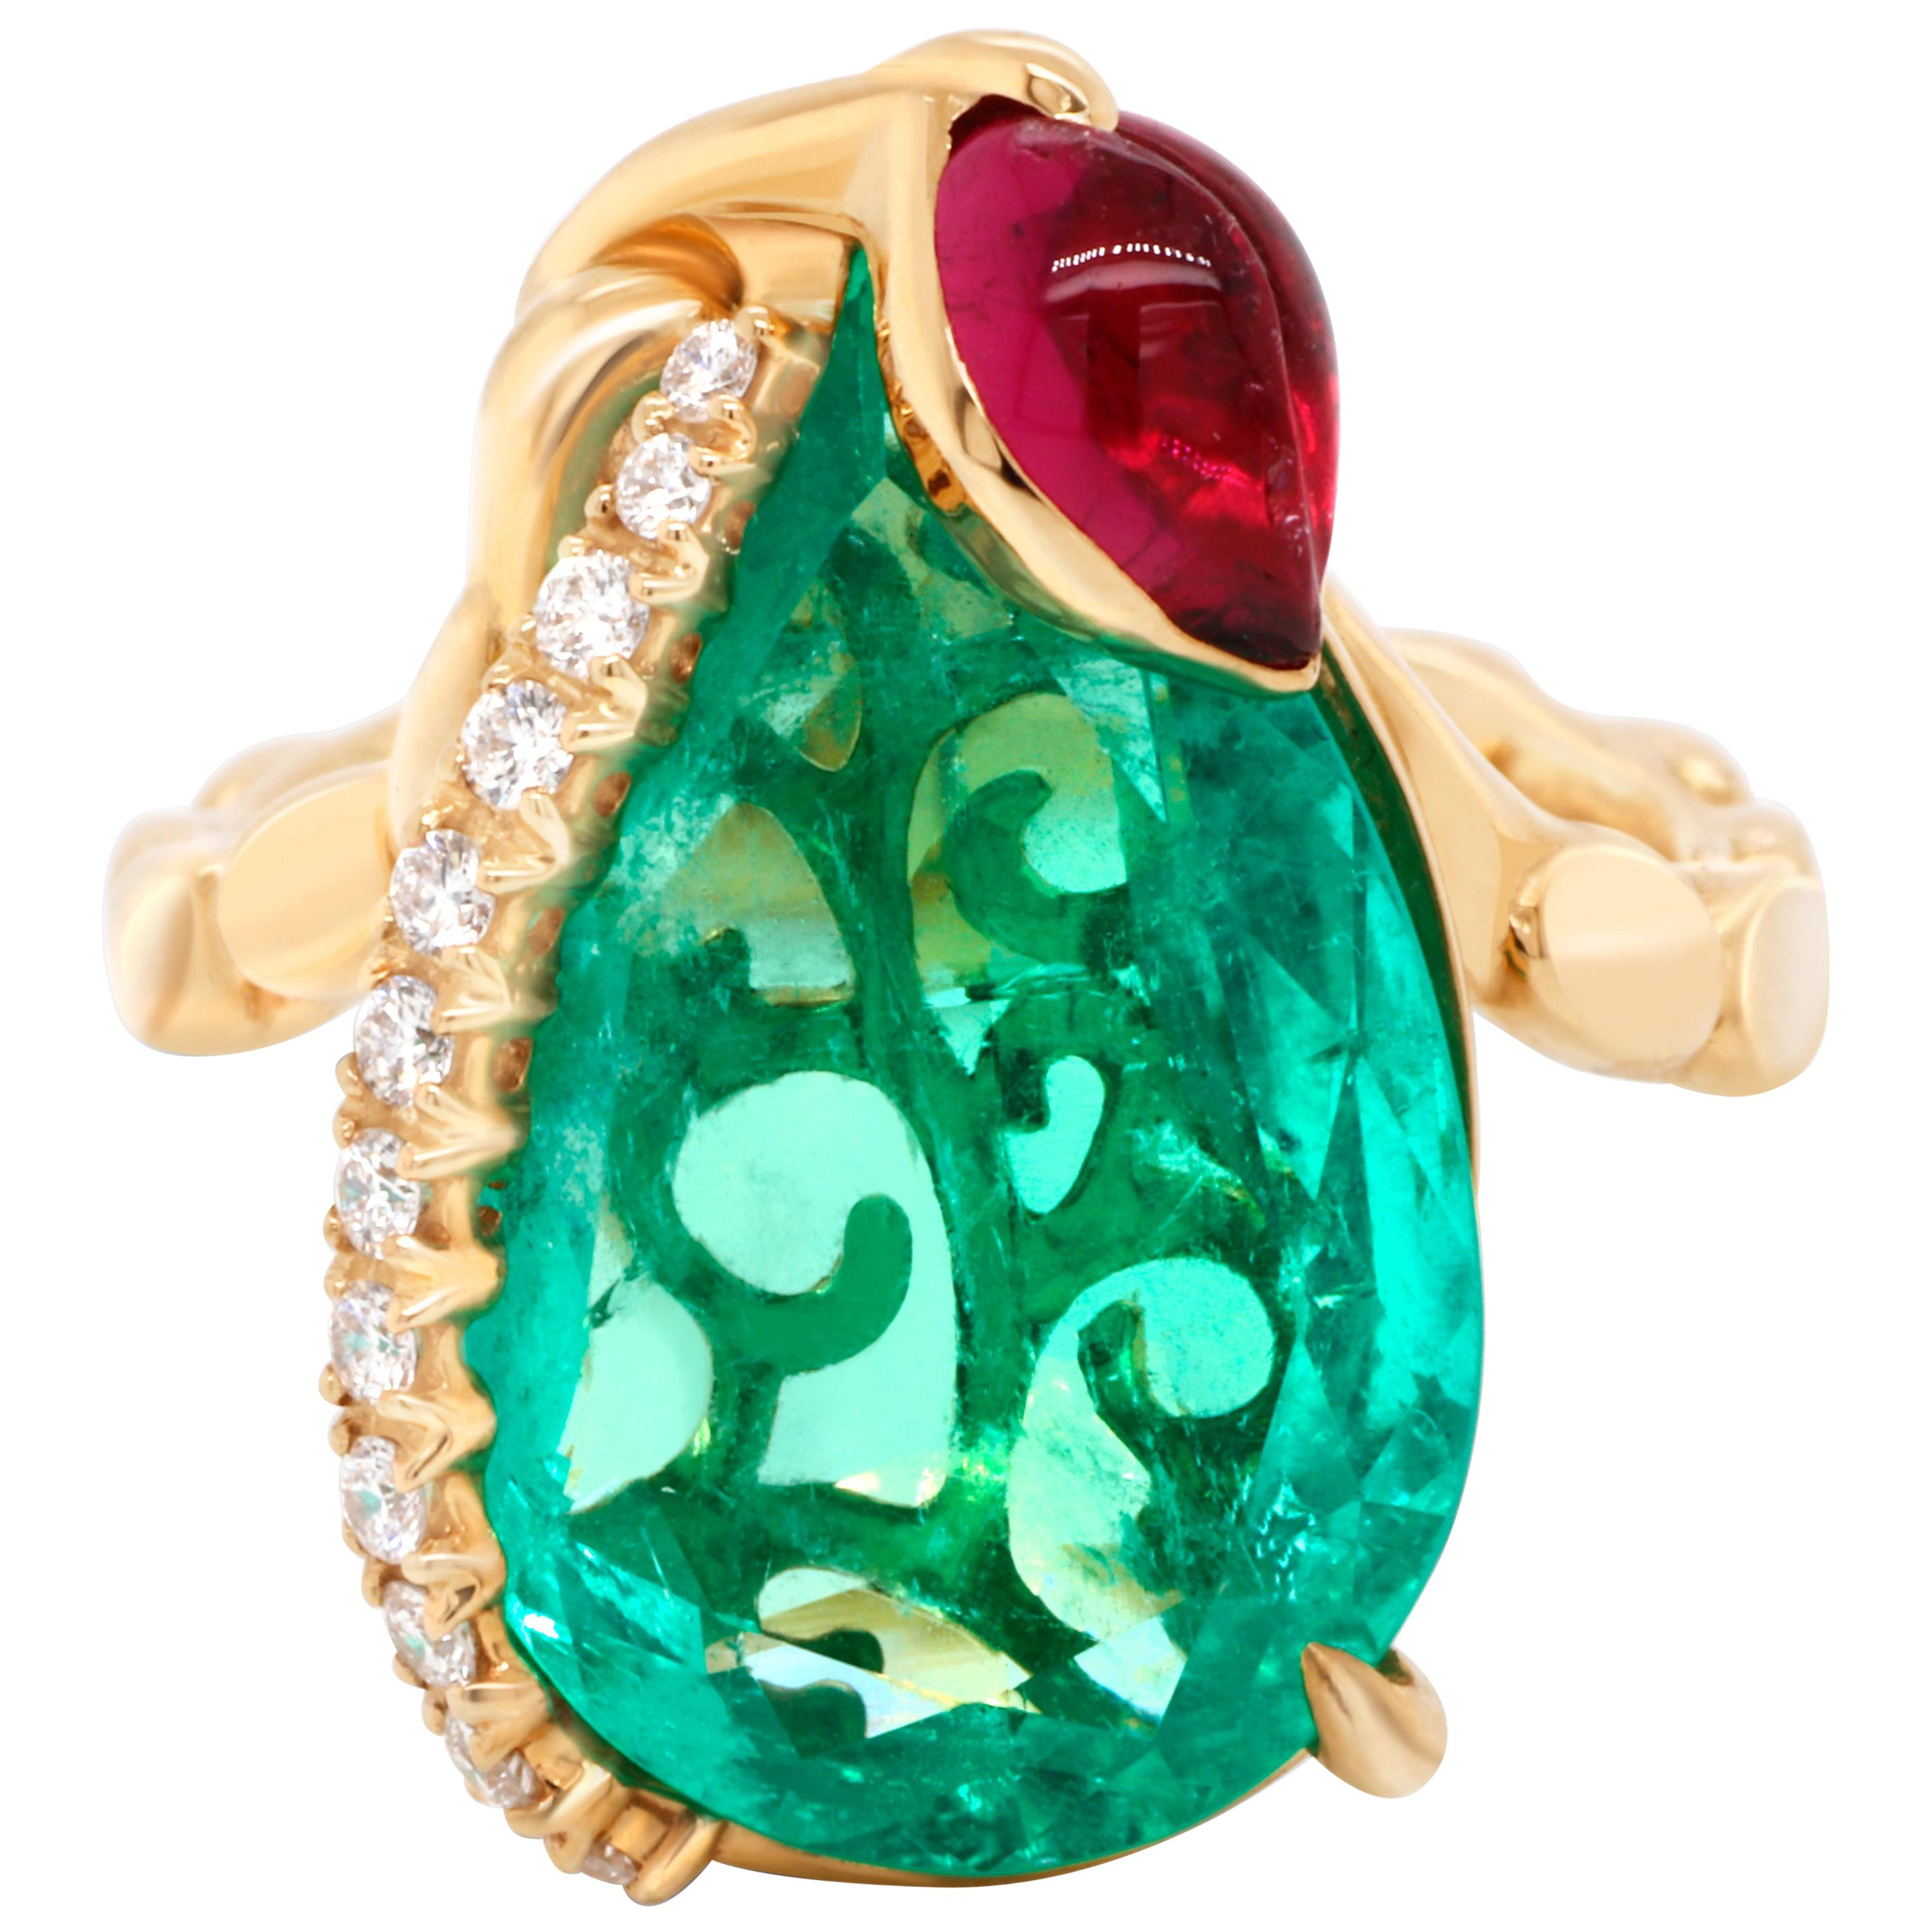 8.51 Ct Colombian Emerald 18 Karat Gold Diamond GIA Certified Cocktail Ring